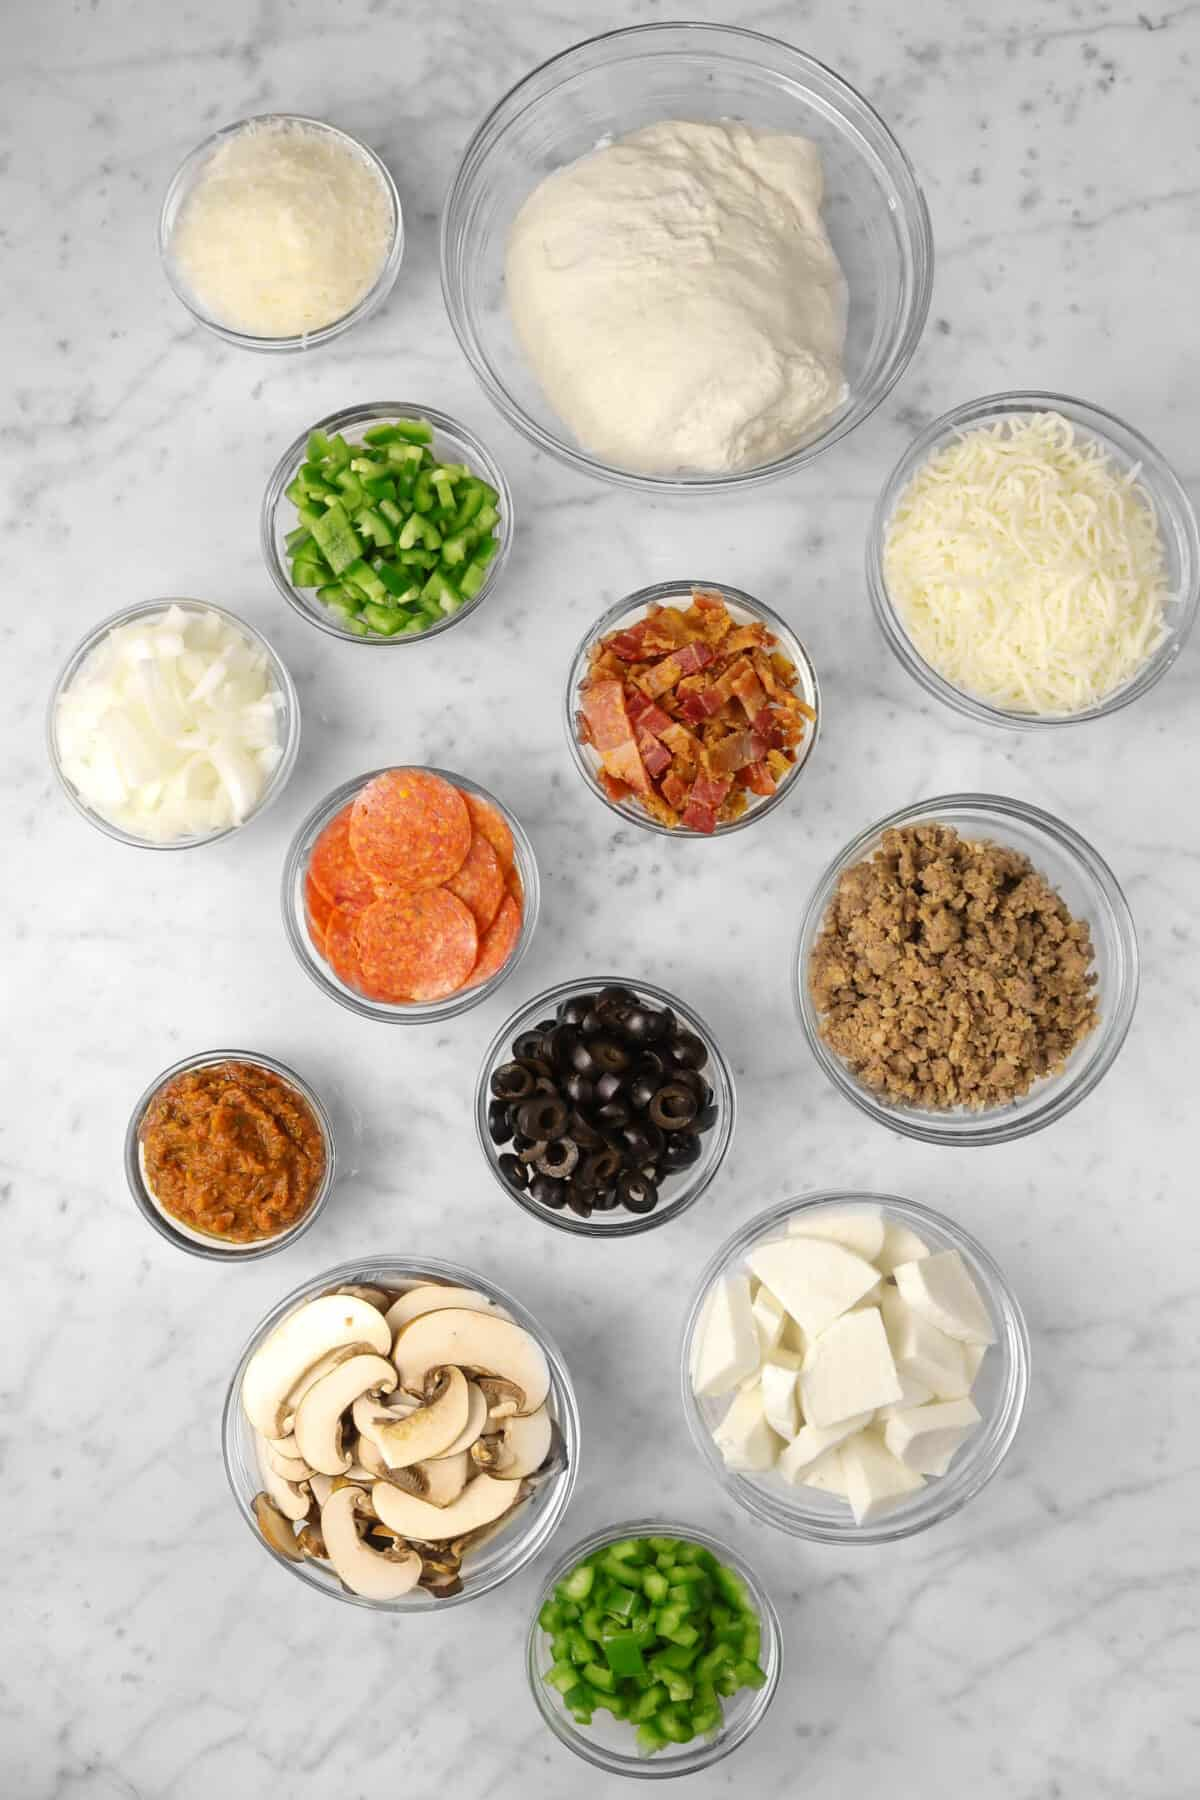 ingredients for supreme pizza on a marble counter